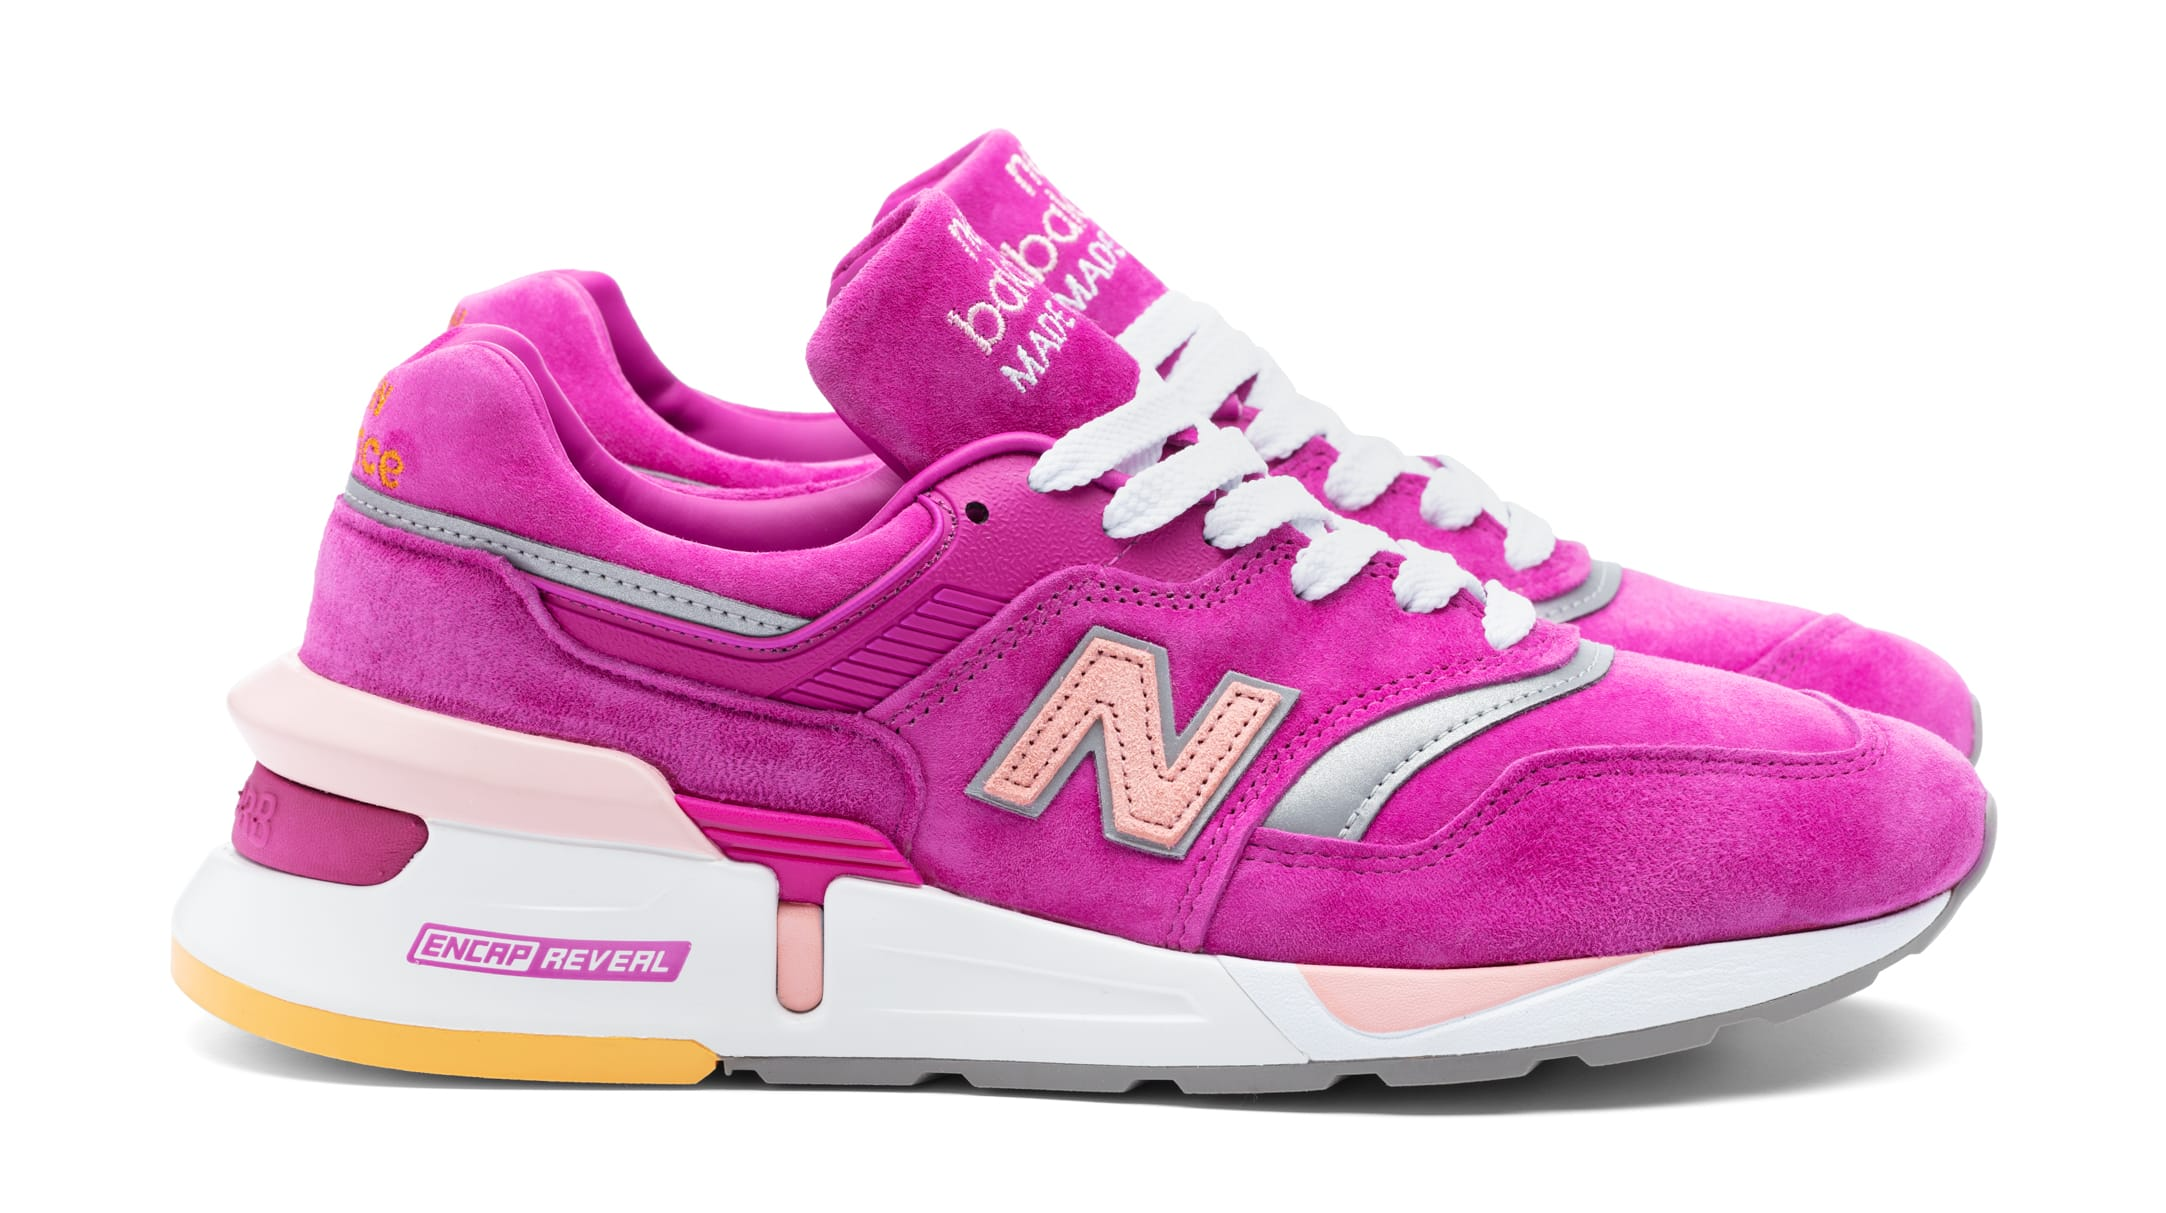 Concepts x New Balance 997S Fusion 'ESRUC' (Right)